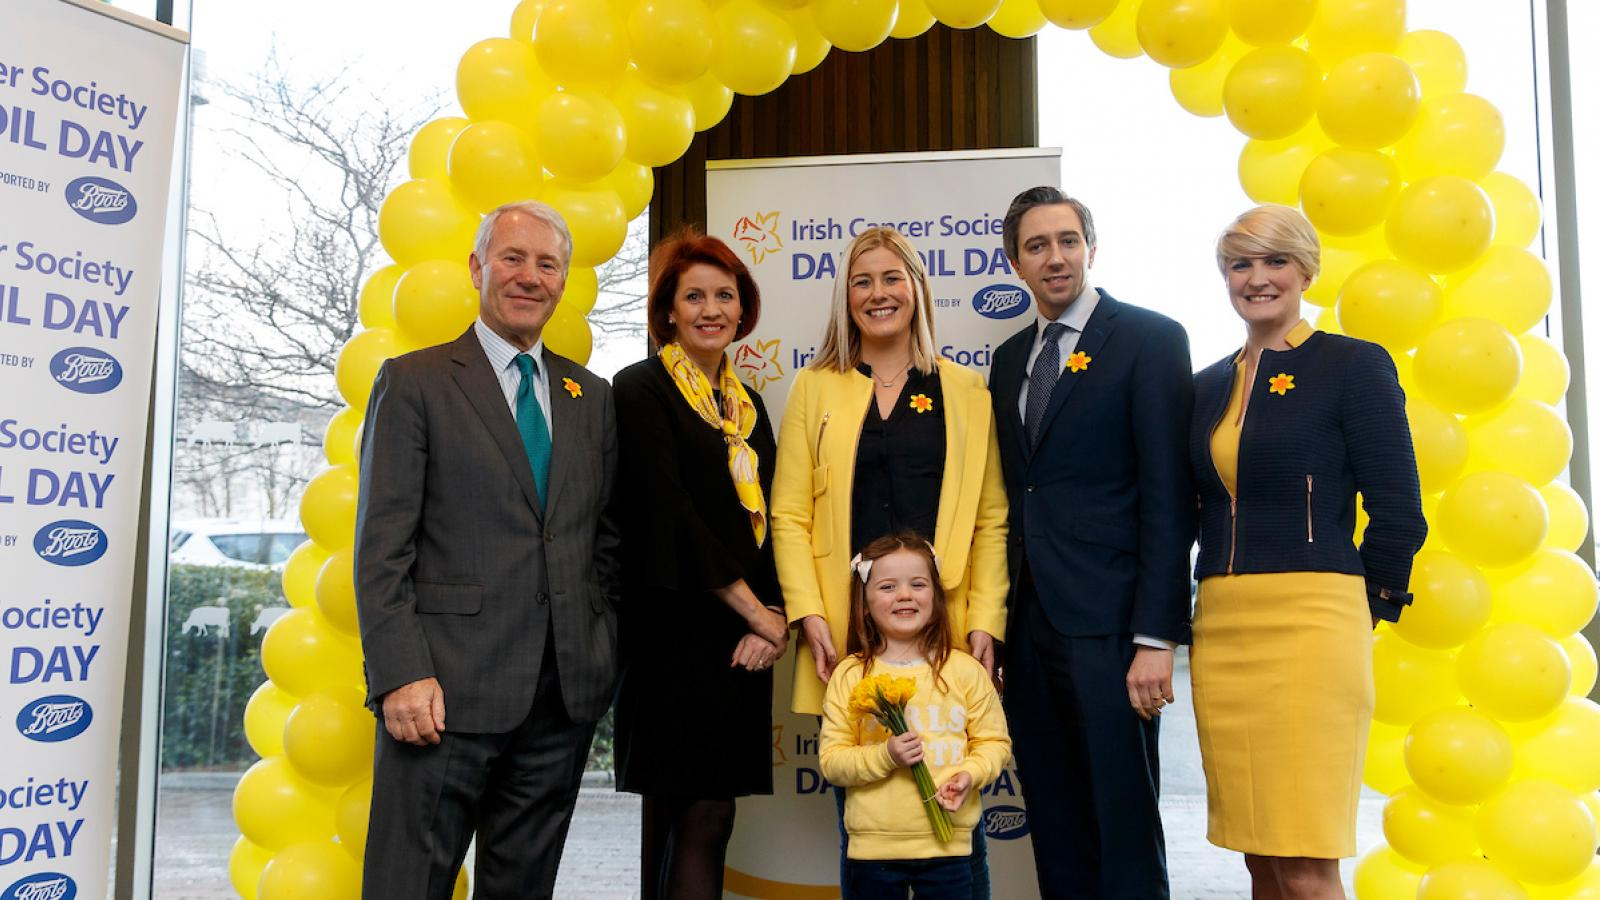 Dermot Breen, Averil Power and Simon Harris at Daffodil Day launch